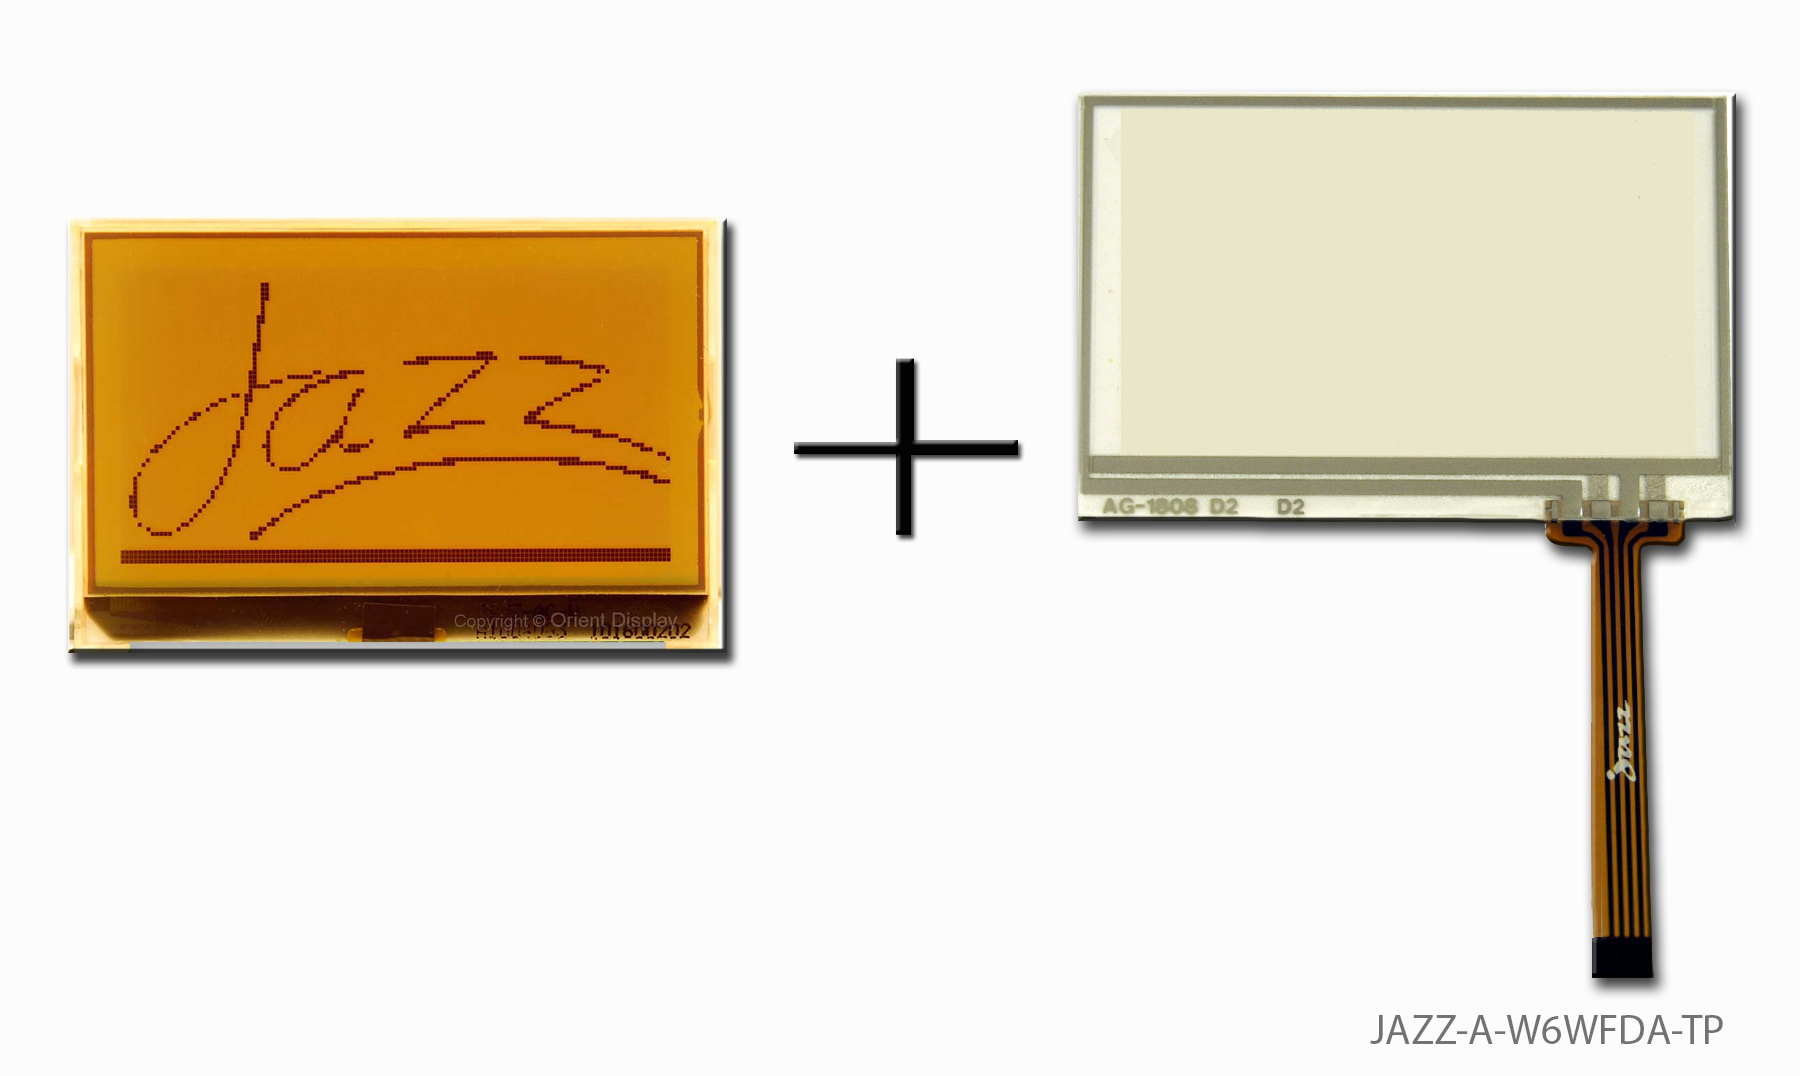 JAZZ-A-W6WFDA-TP (LCD+BL+RTP Graphic COG 128x64)